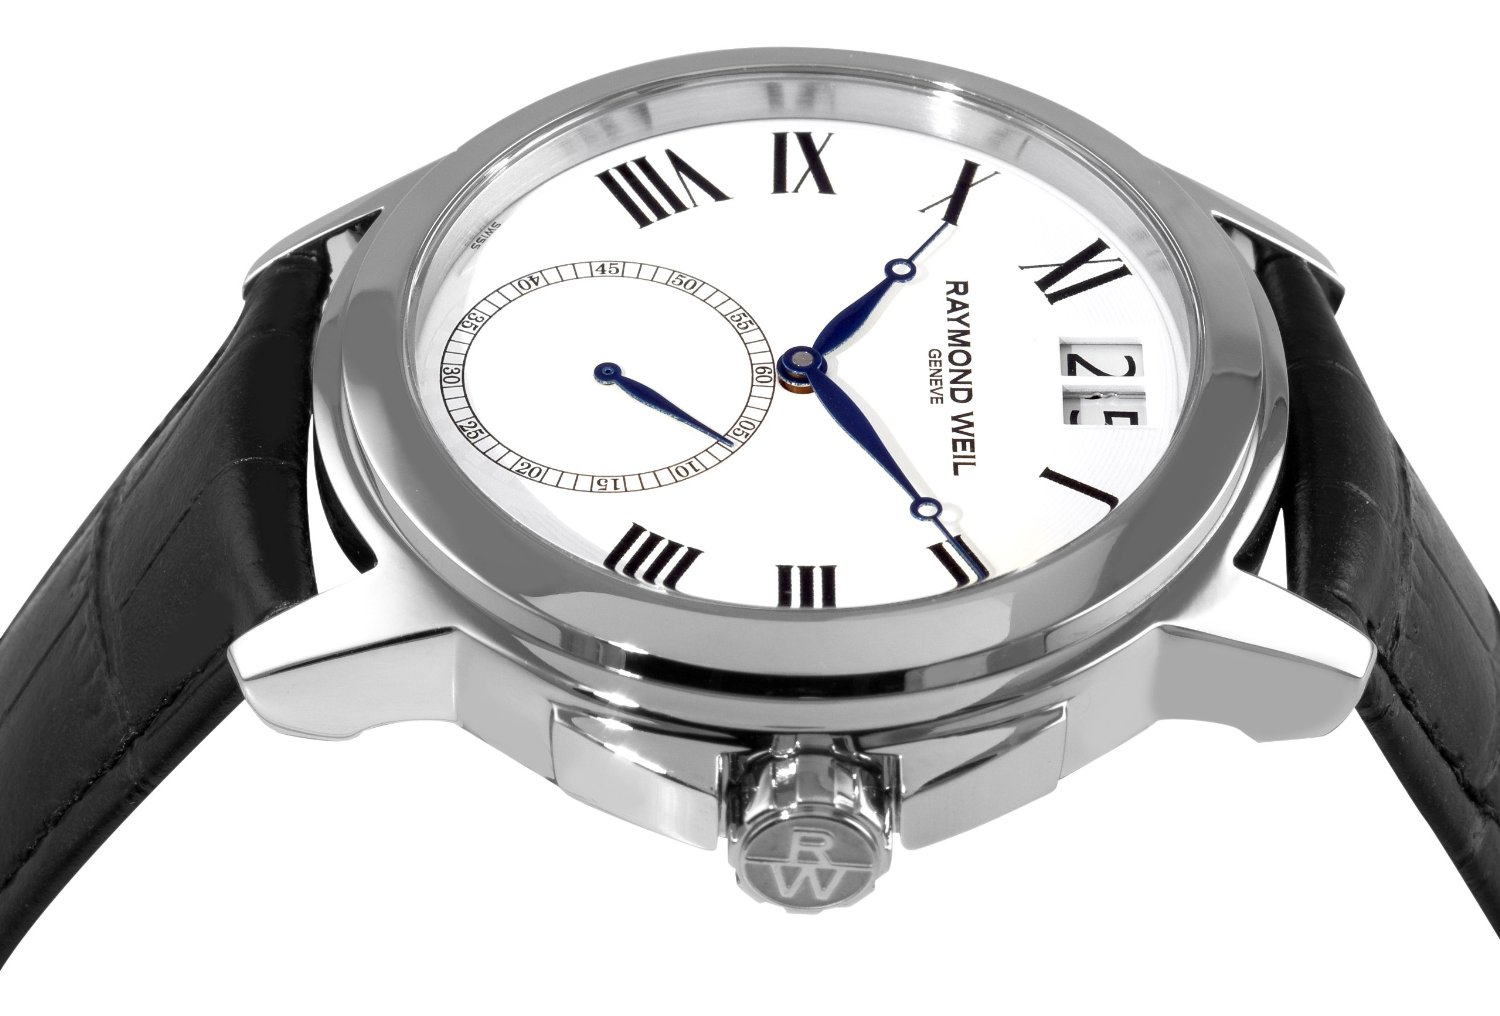 Invicta Watches For Men Reviews Images